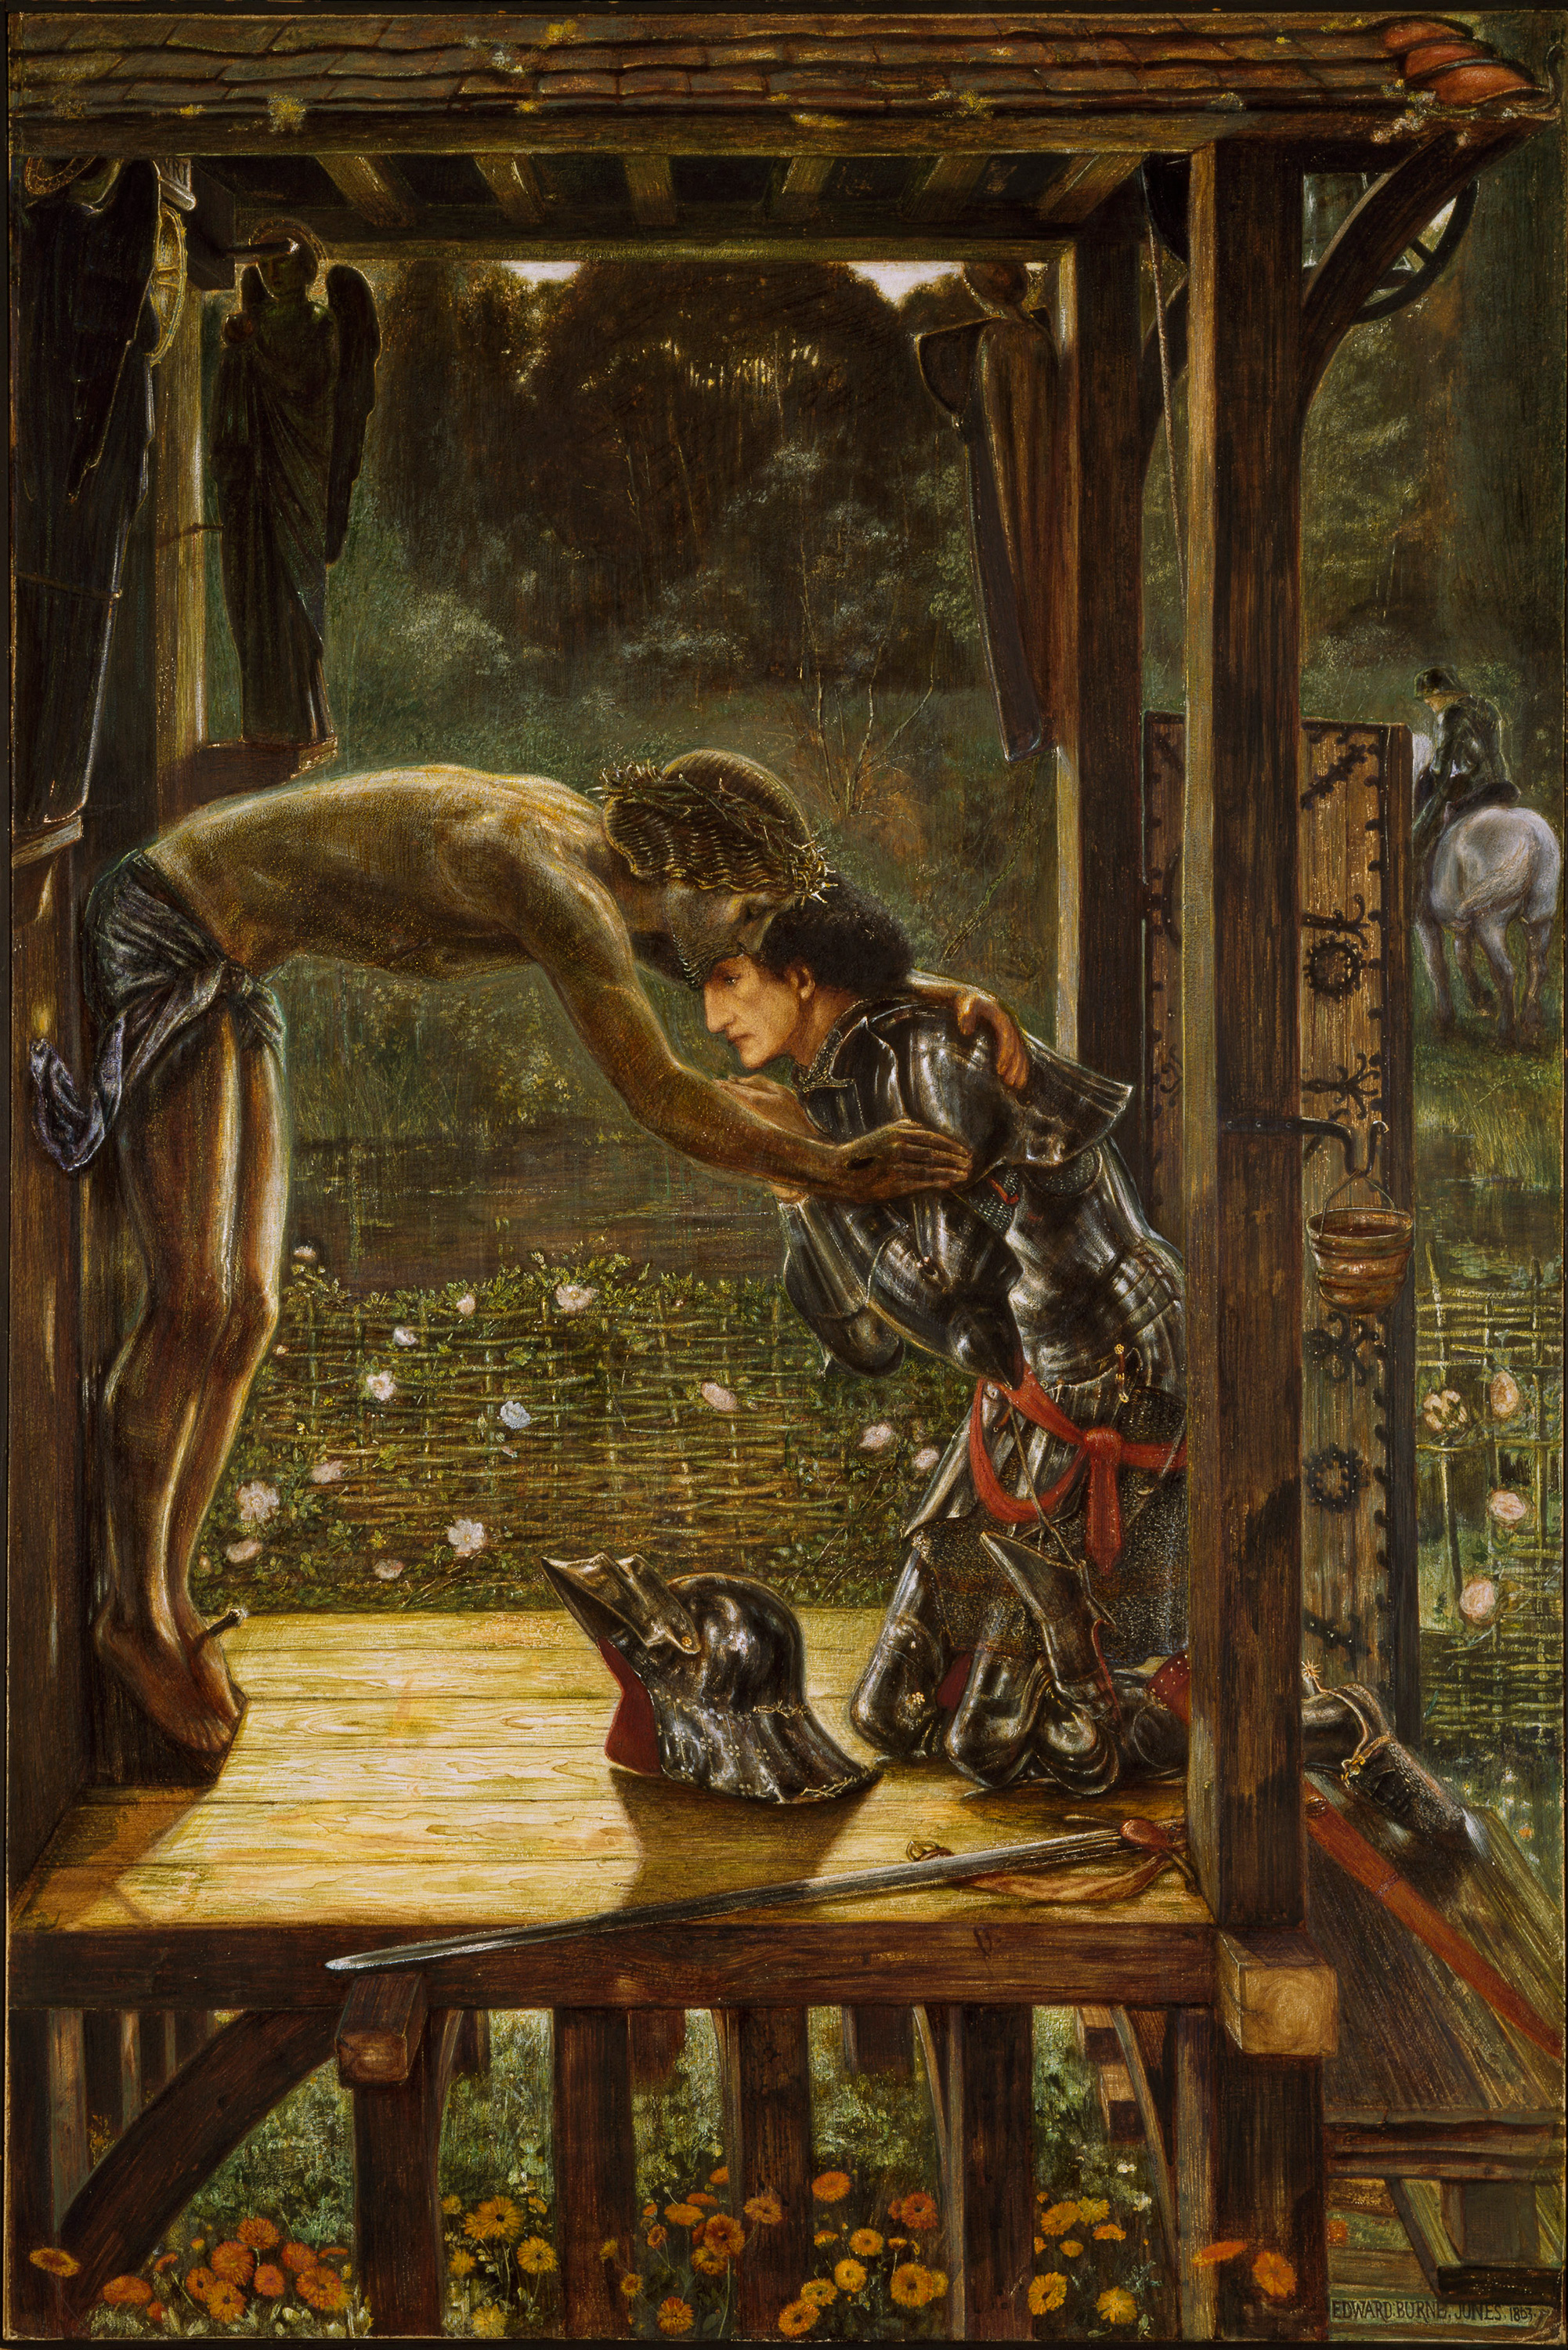 The Merciful Knight, 1863 — Edward Burne-Jones